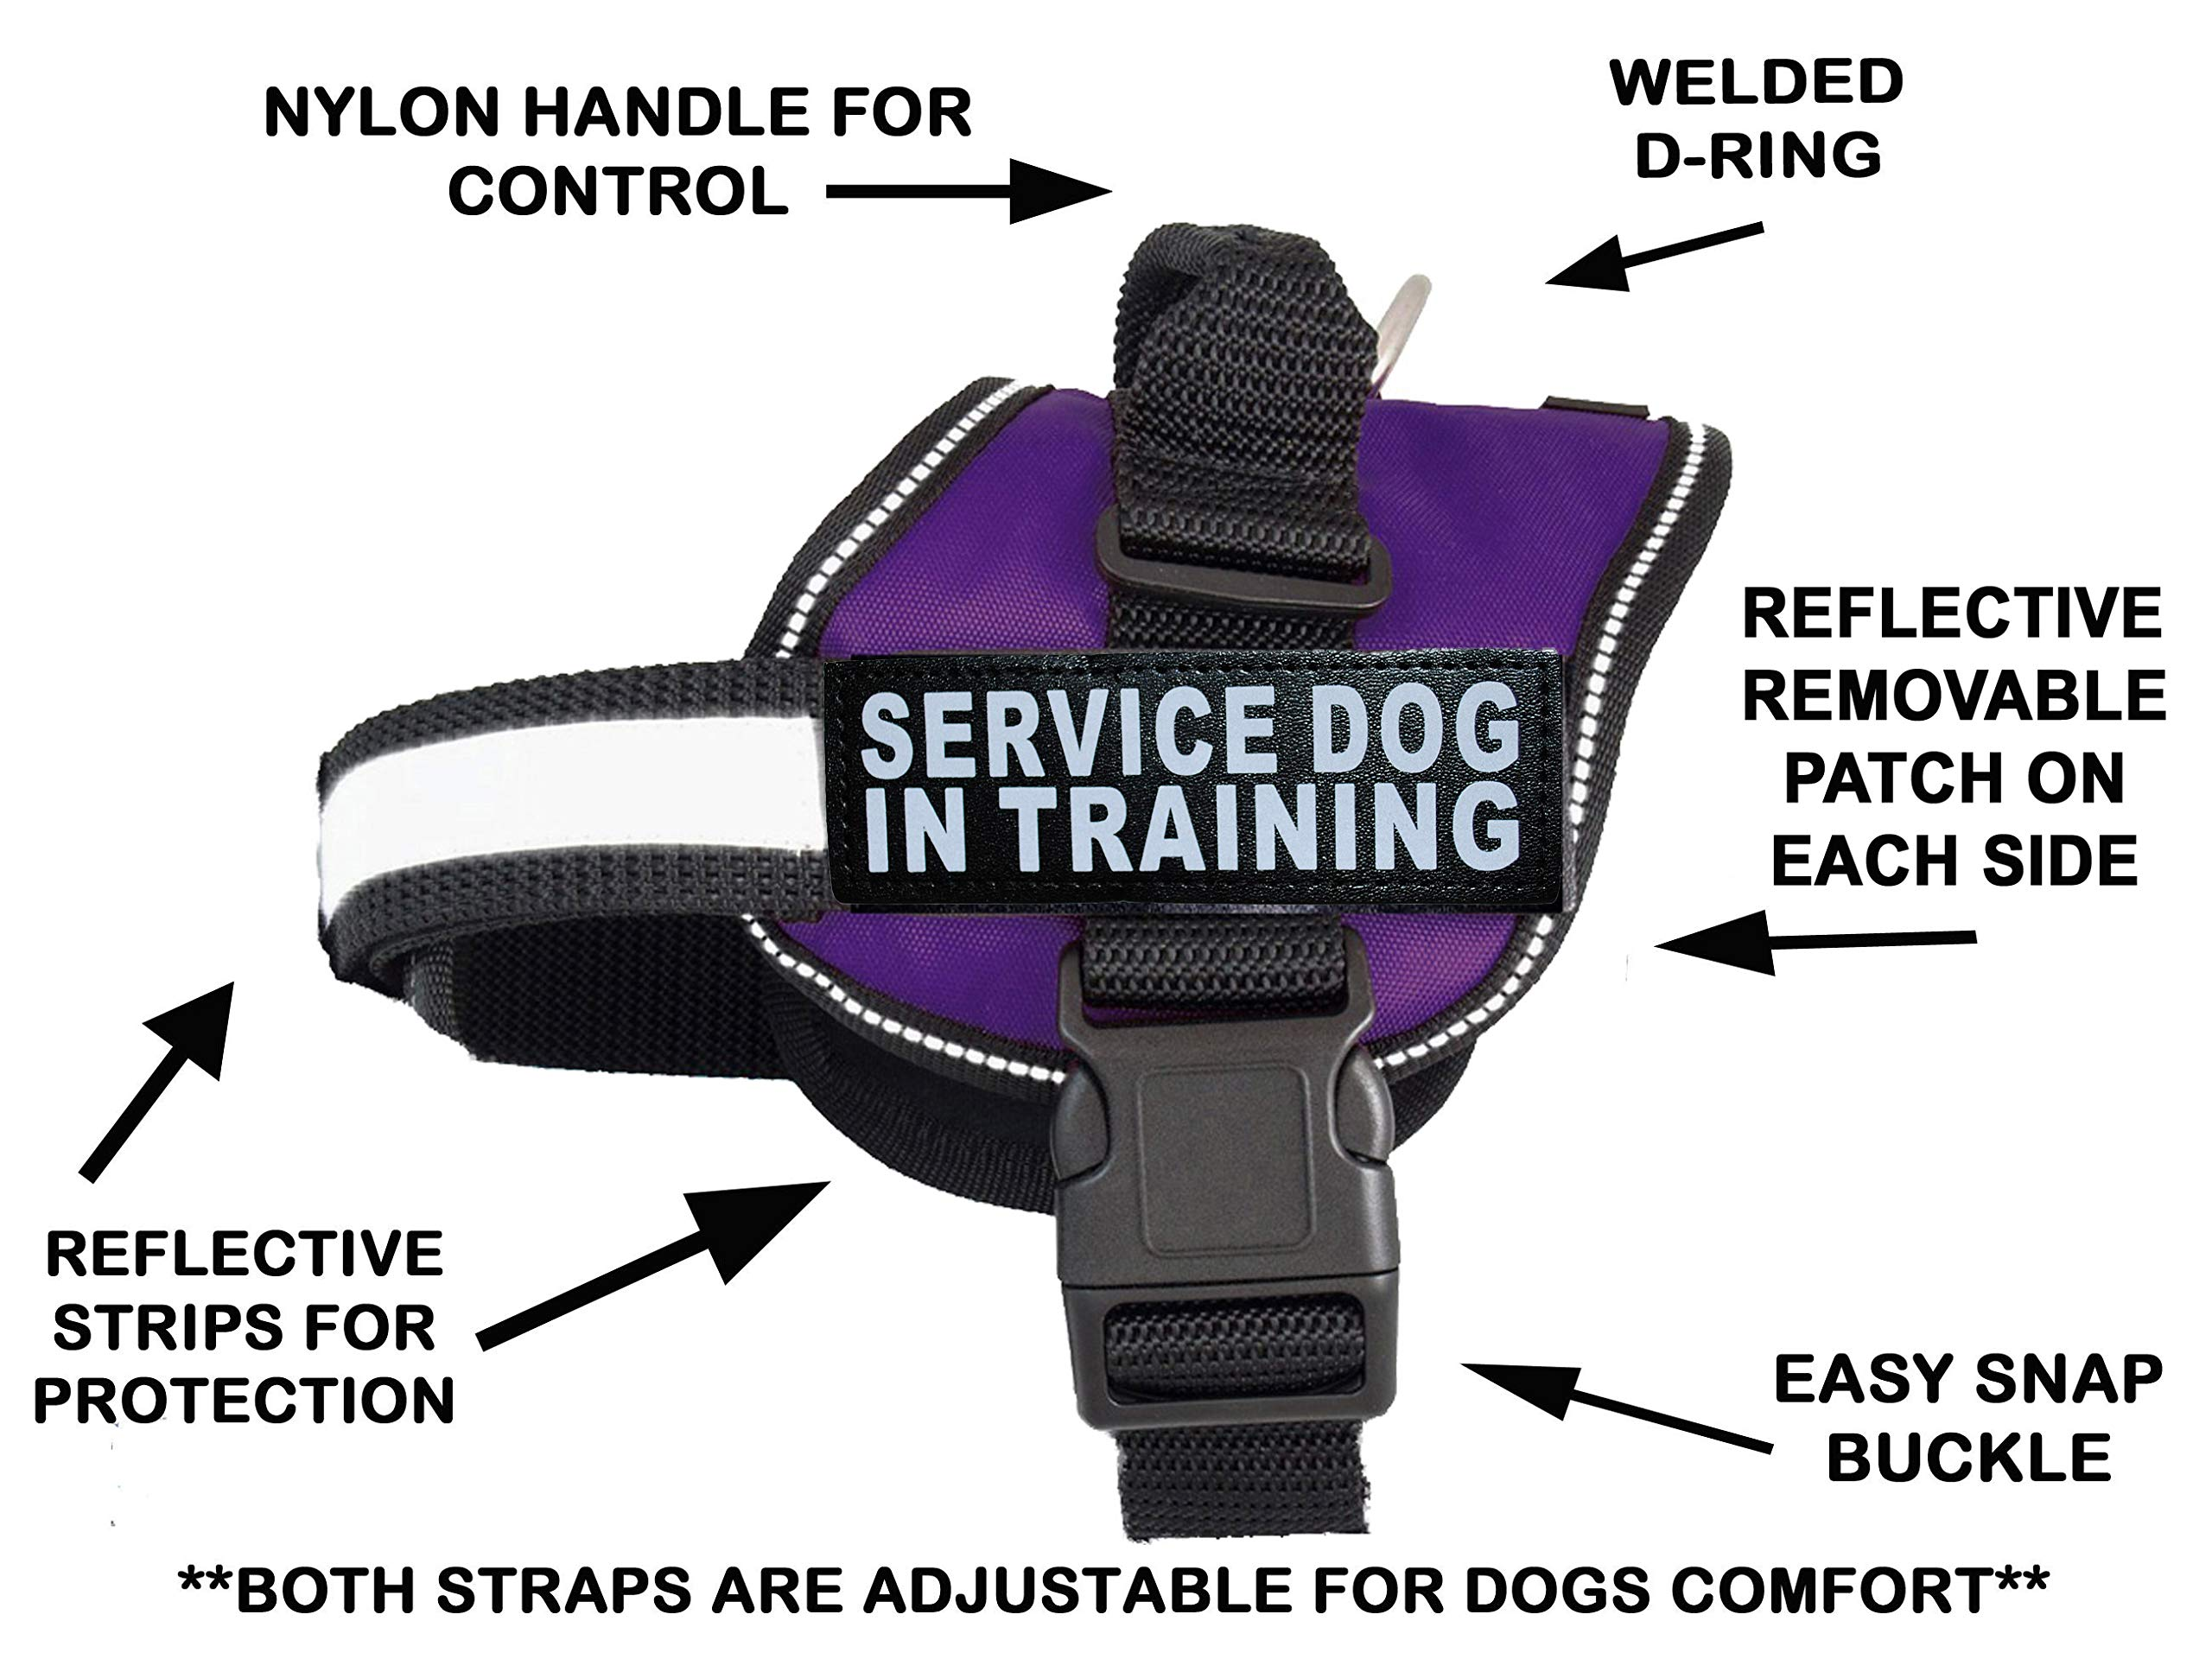 Servcie Dog in Training Nylon Dog Vest Harness. Purchase Comes with 2 Reflective Service Dog in Training pathces. Please Measure Your Dog Before Ordering (Girth 24-31'', Purple)